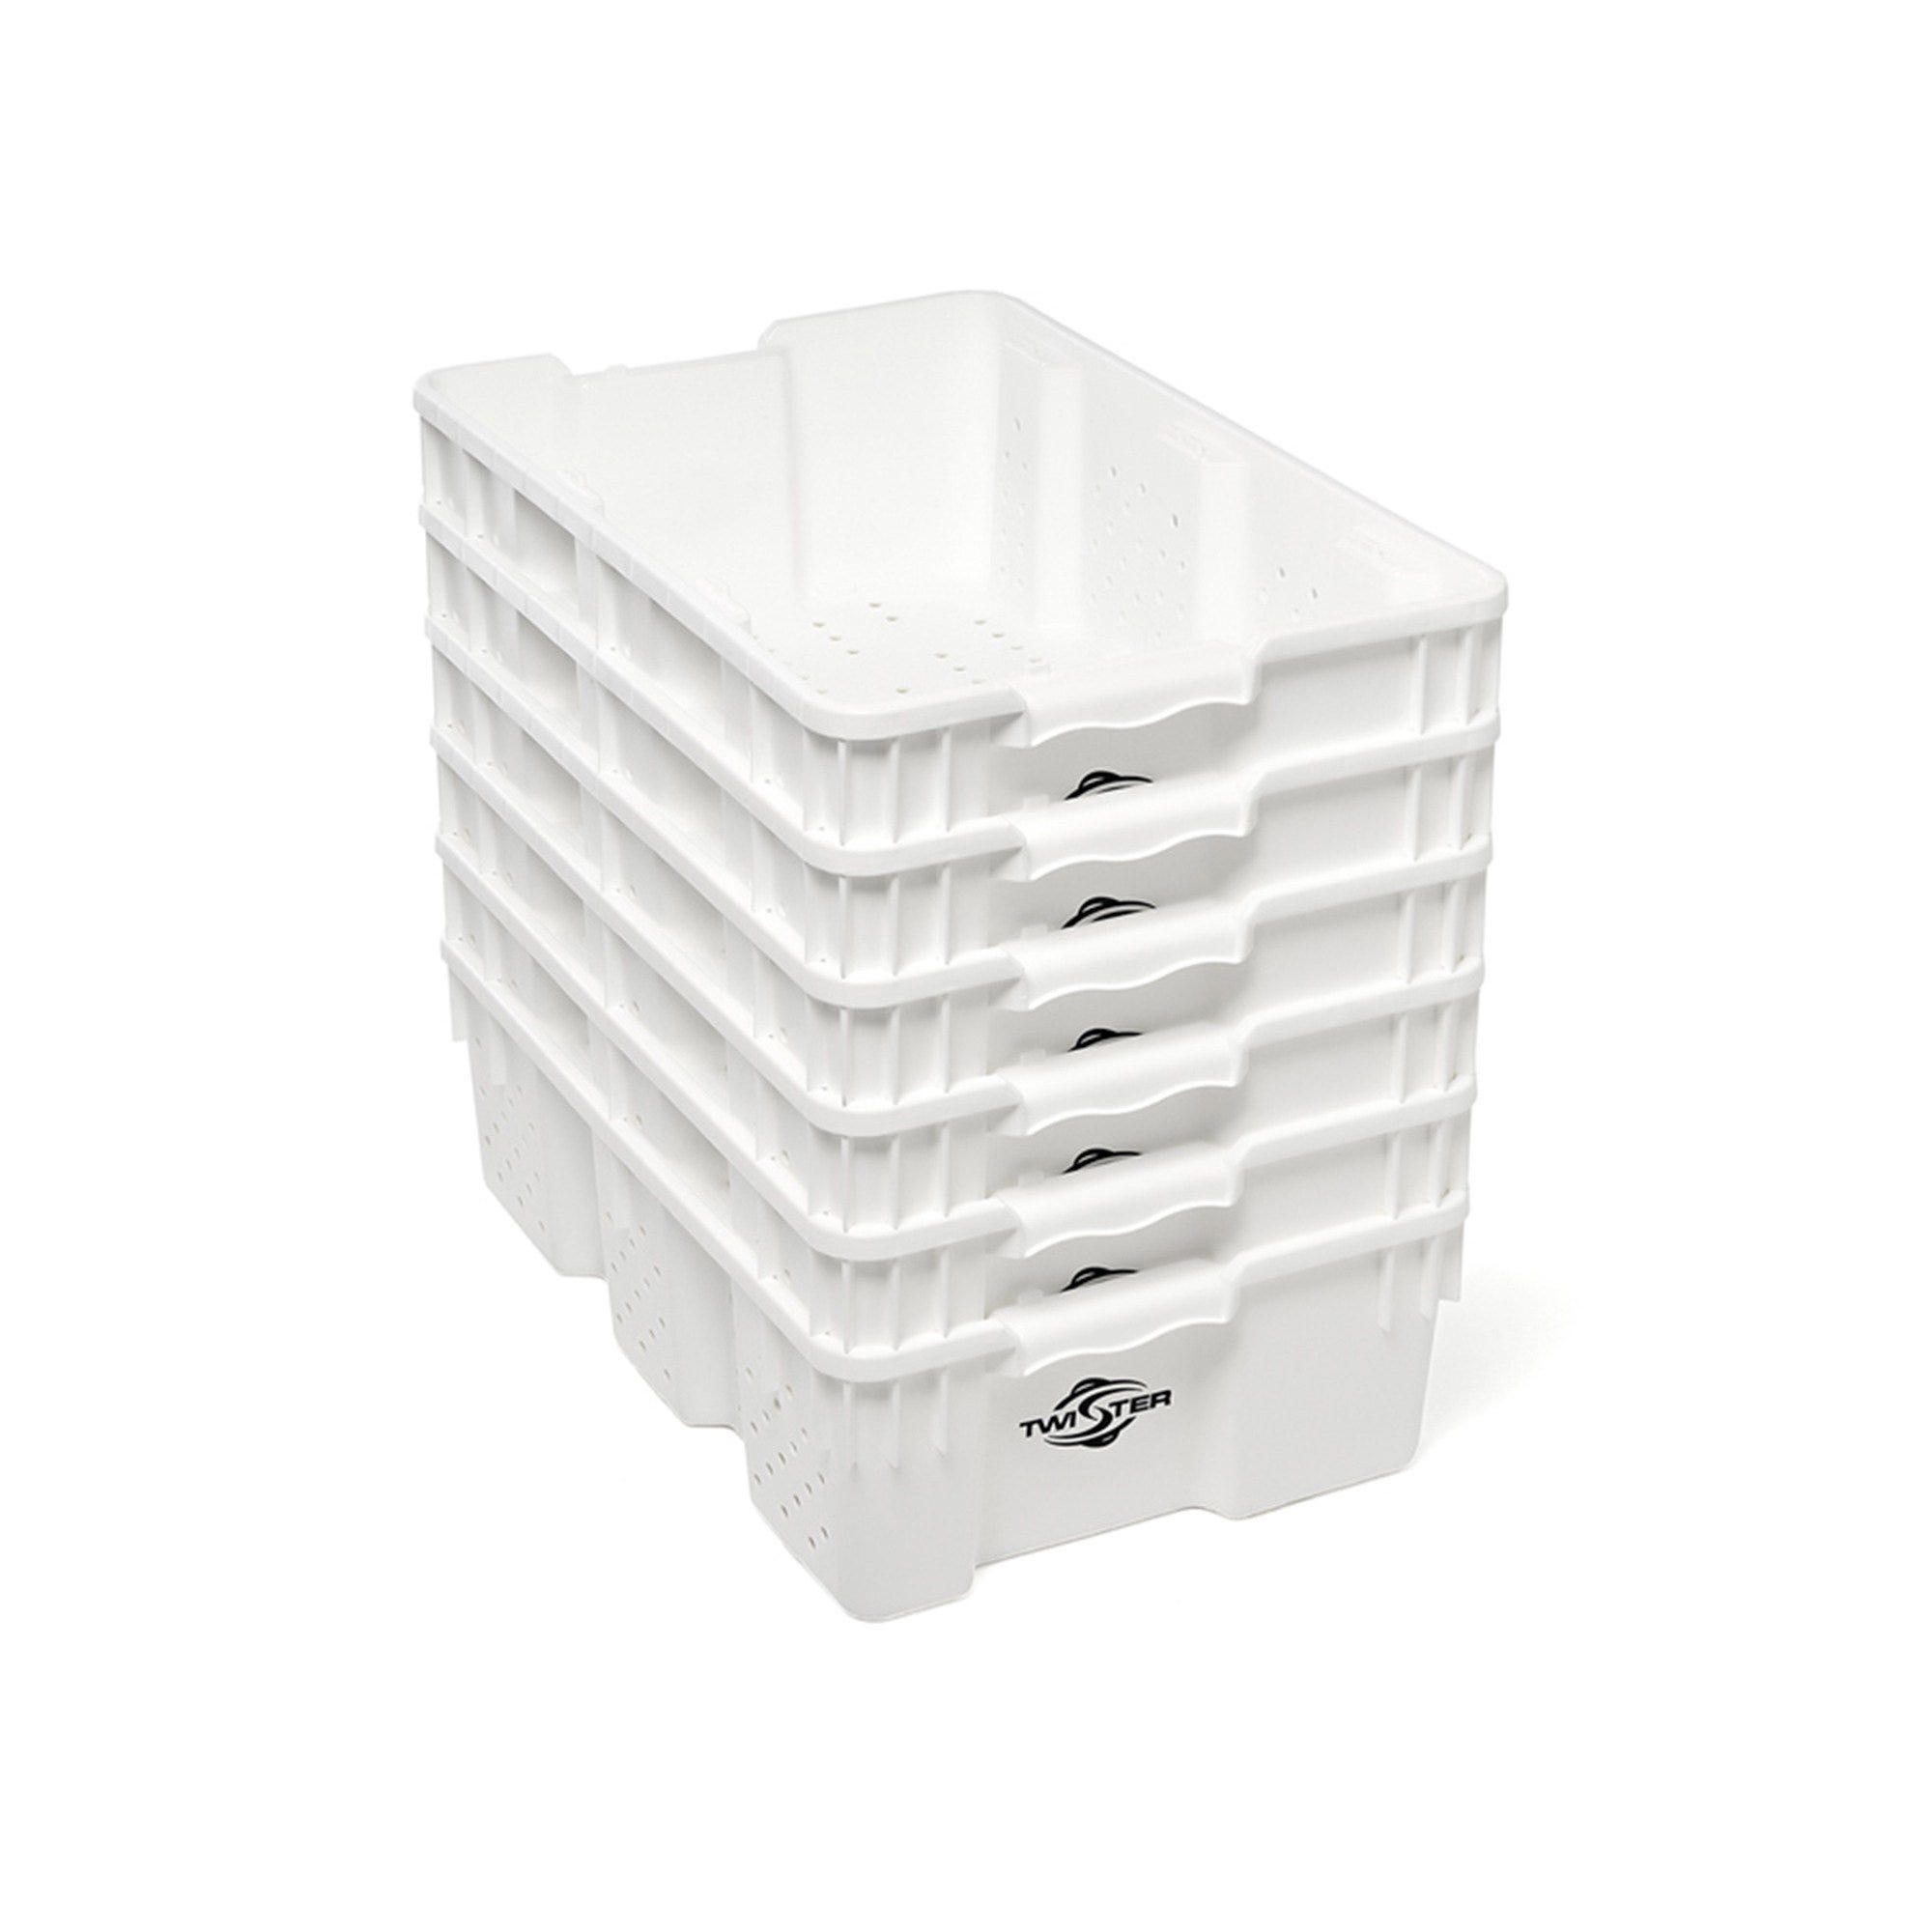 Twister Stackable Handling Tray - 10/Pack These trays from Twister are perfect for handling and freezing product. Designed to stack on top of each other for maximum airflow, you can easily stack 50 of these ventilated trays per palette for easy storage and movement to and from rooms or locations. High-density food-grade polyethylene is 100% freezer and dishwasher safe. Maximum durability. Trim straight into these bad boys!! Features Will stack and nest with 180-degree turn Containers will nest at a ratio of 2.5:1 Ventilation holes on sides & bottom U. V. stabilized Easy access handles Freezer safe 100% recyclable material Food-grade high-density polyethylene Dishwasher safe Dimensions 24  X 15.75  X 7.25  (OD) 22.64  X 14.76  X 7.09  (ID)